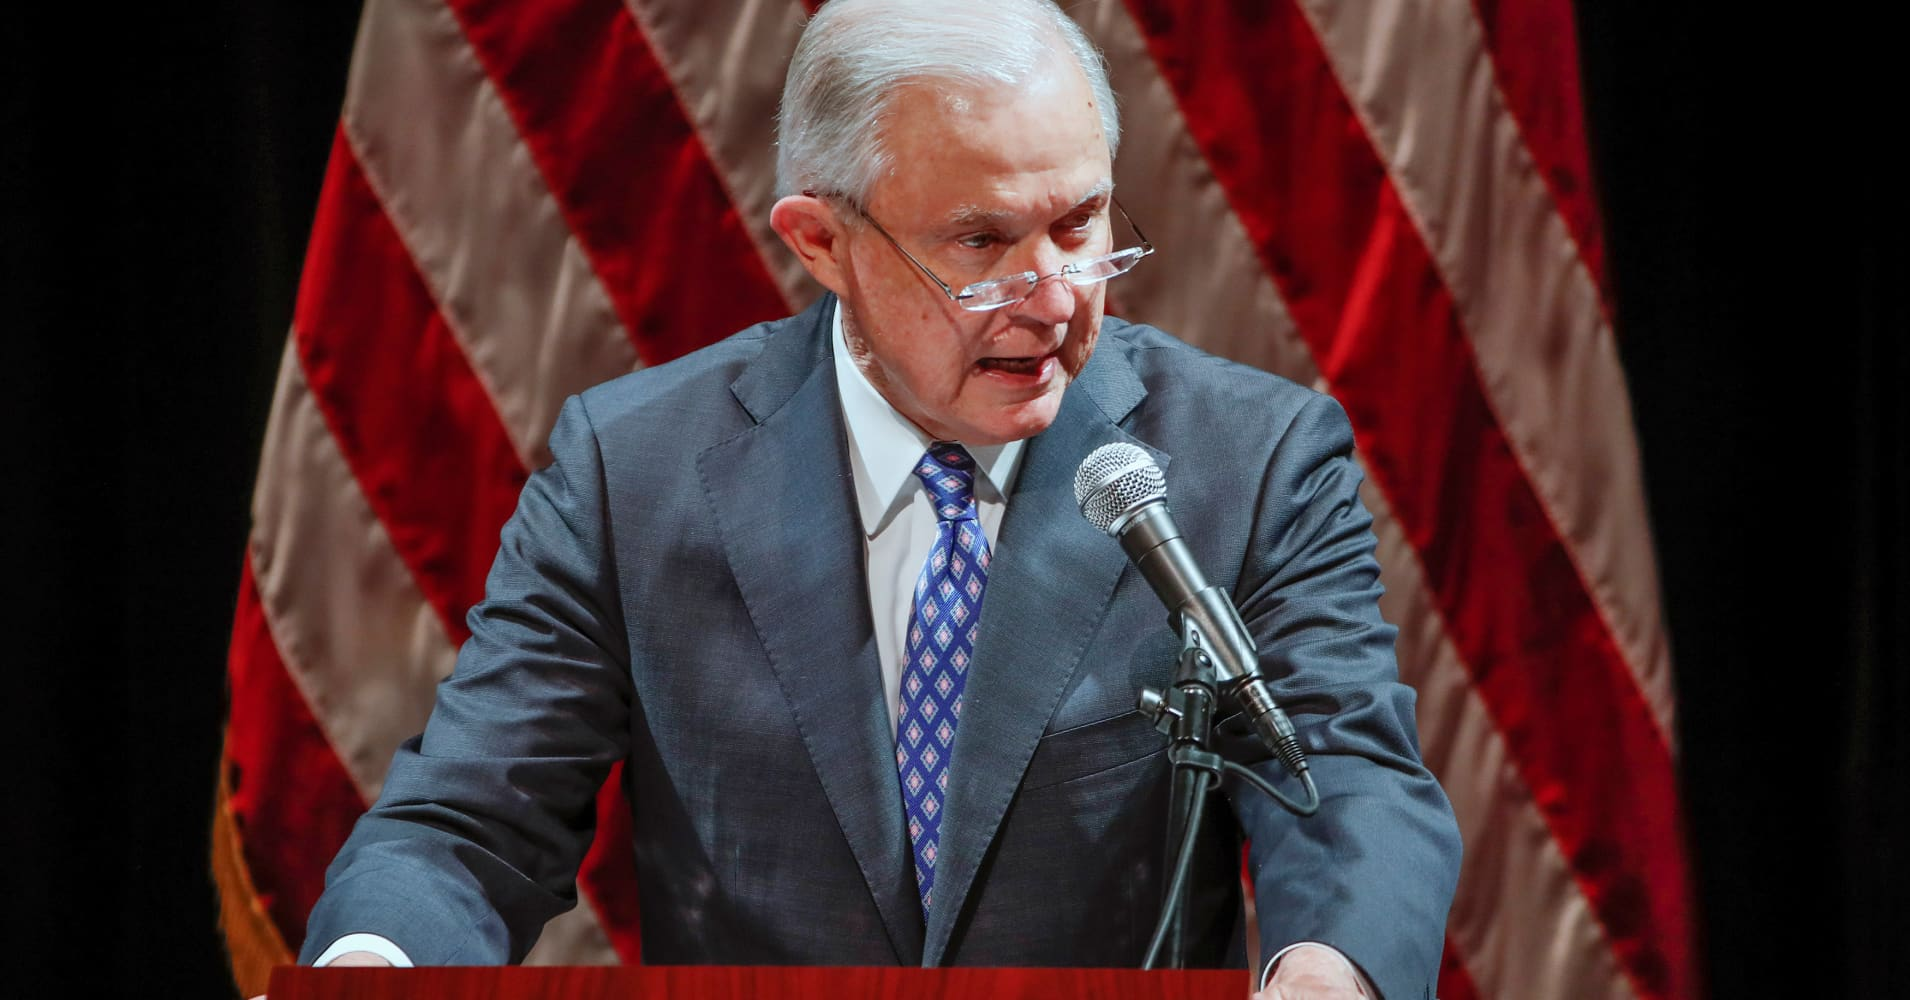 Jeff Sessions: If you want more death, 'listen to the ACLU, Antifa, Black Lives Matter'